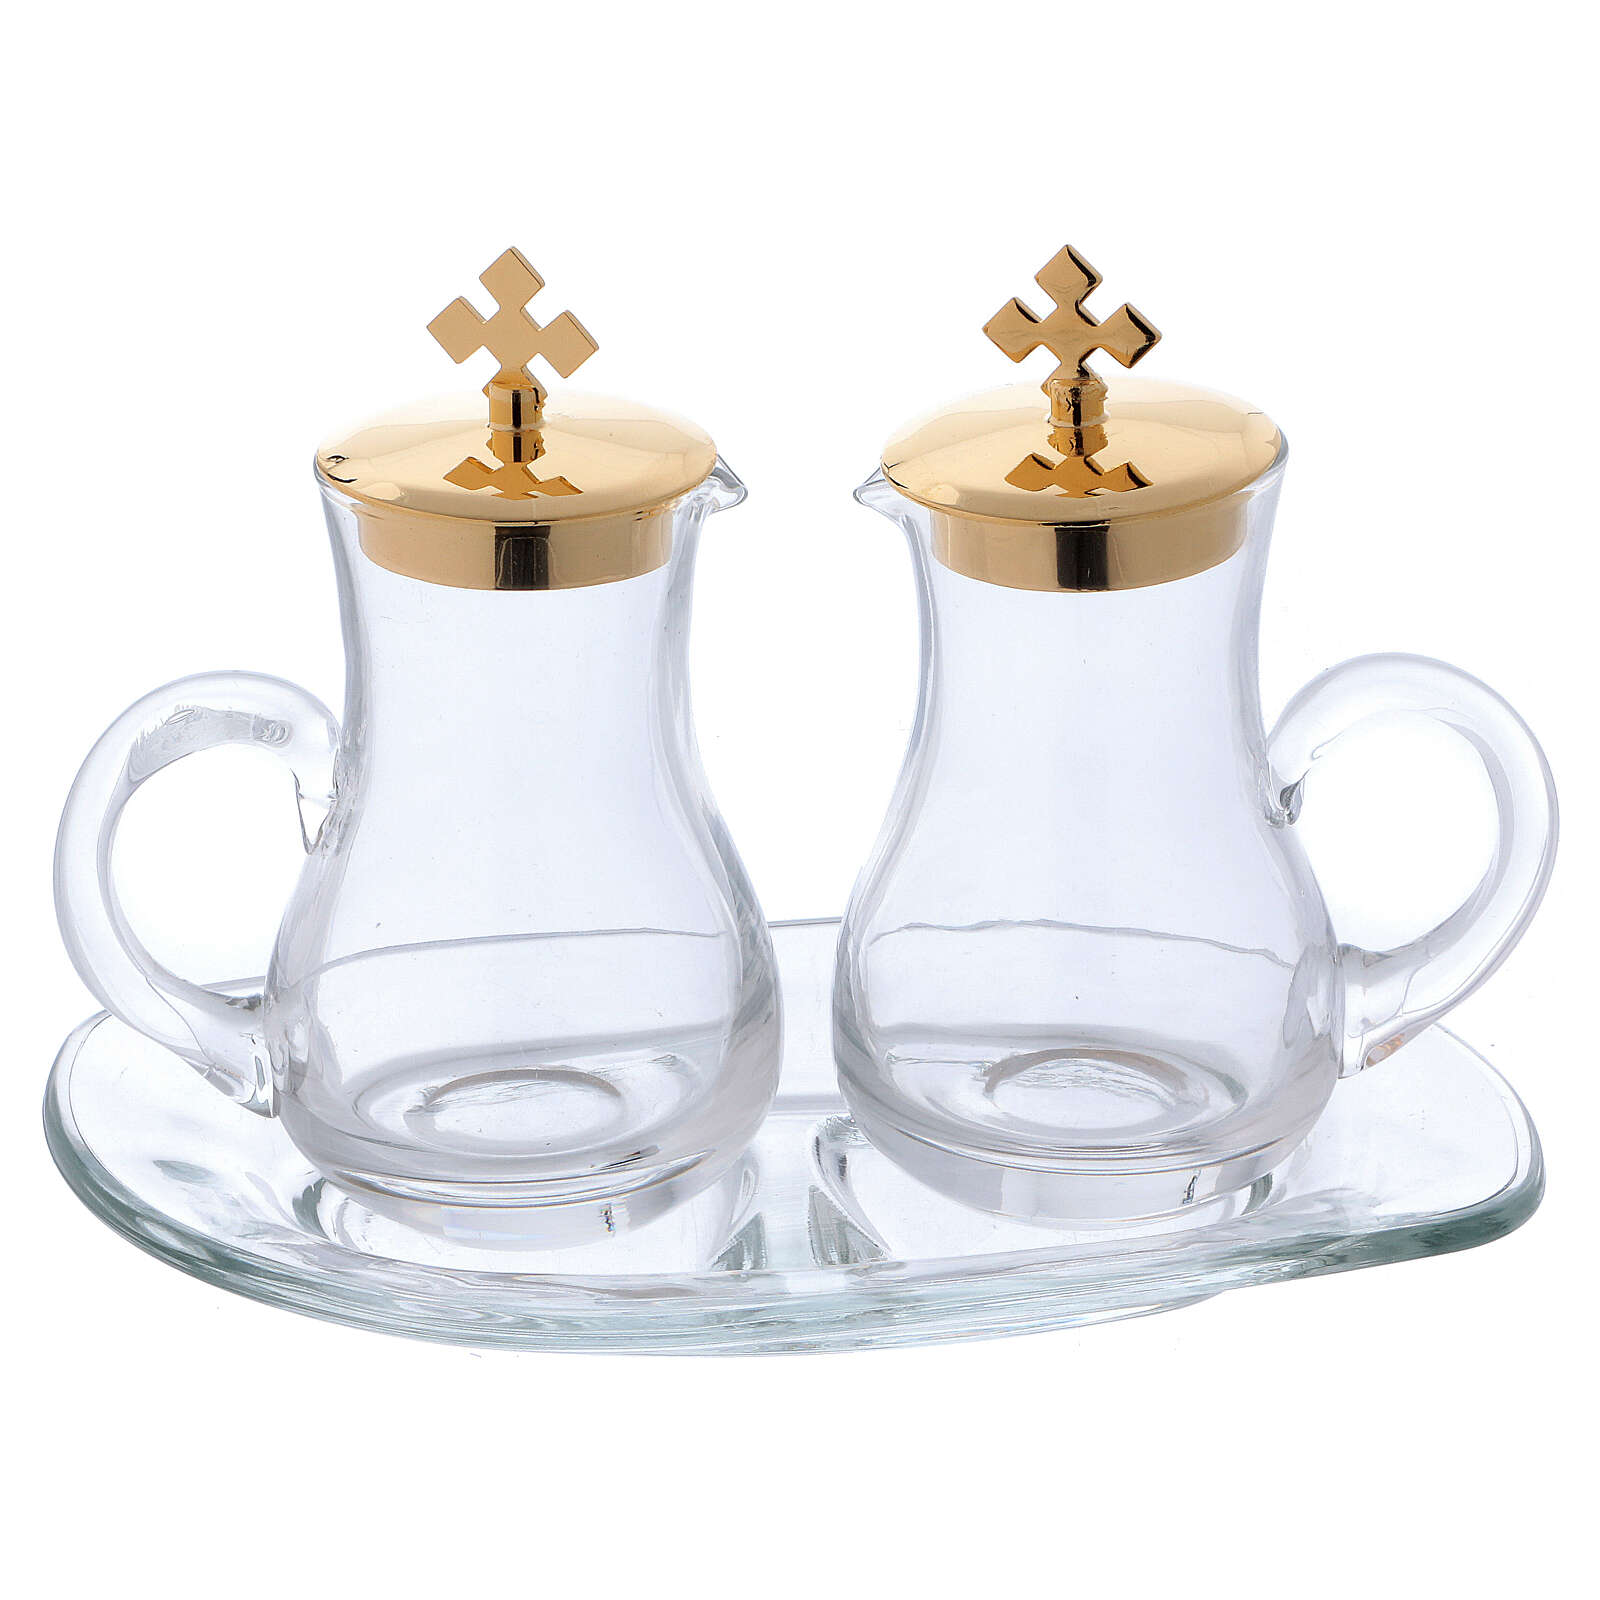 Glass cruet set with tray 4